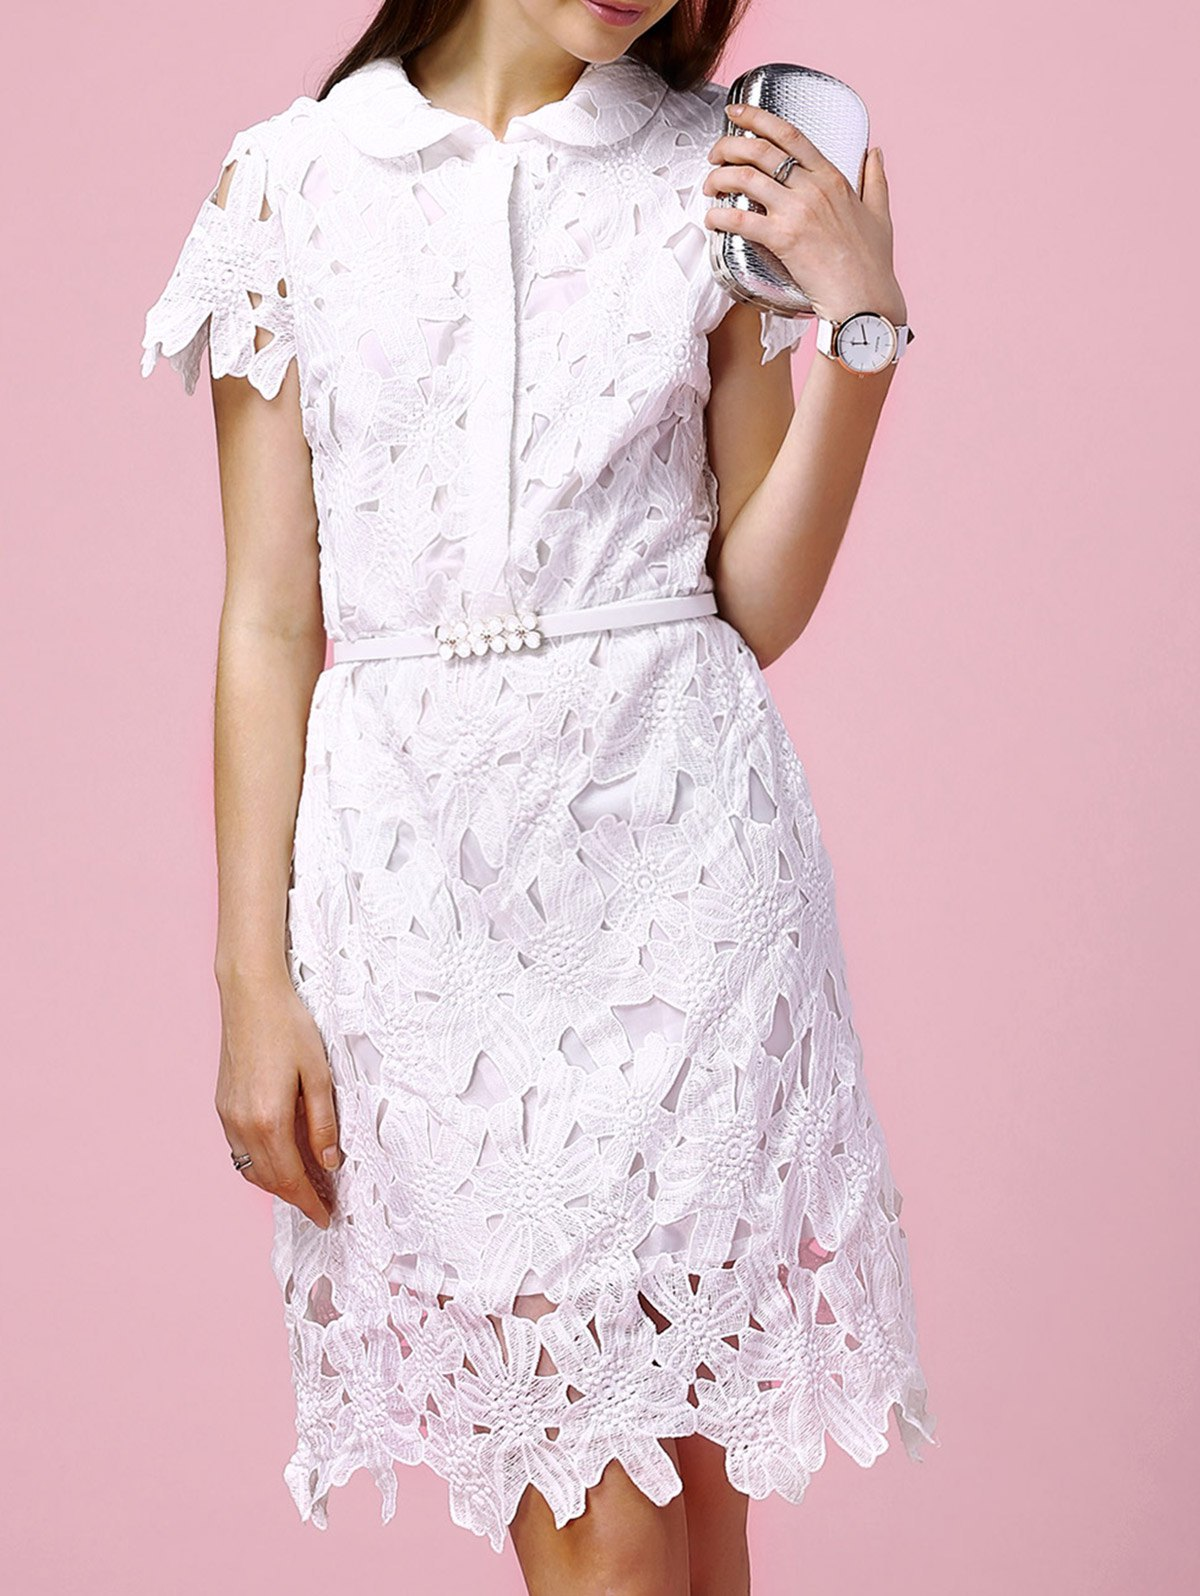 Cute Peter Pan Collar Hollow Out Slimming Floral Embroidery Women's Dress